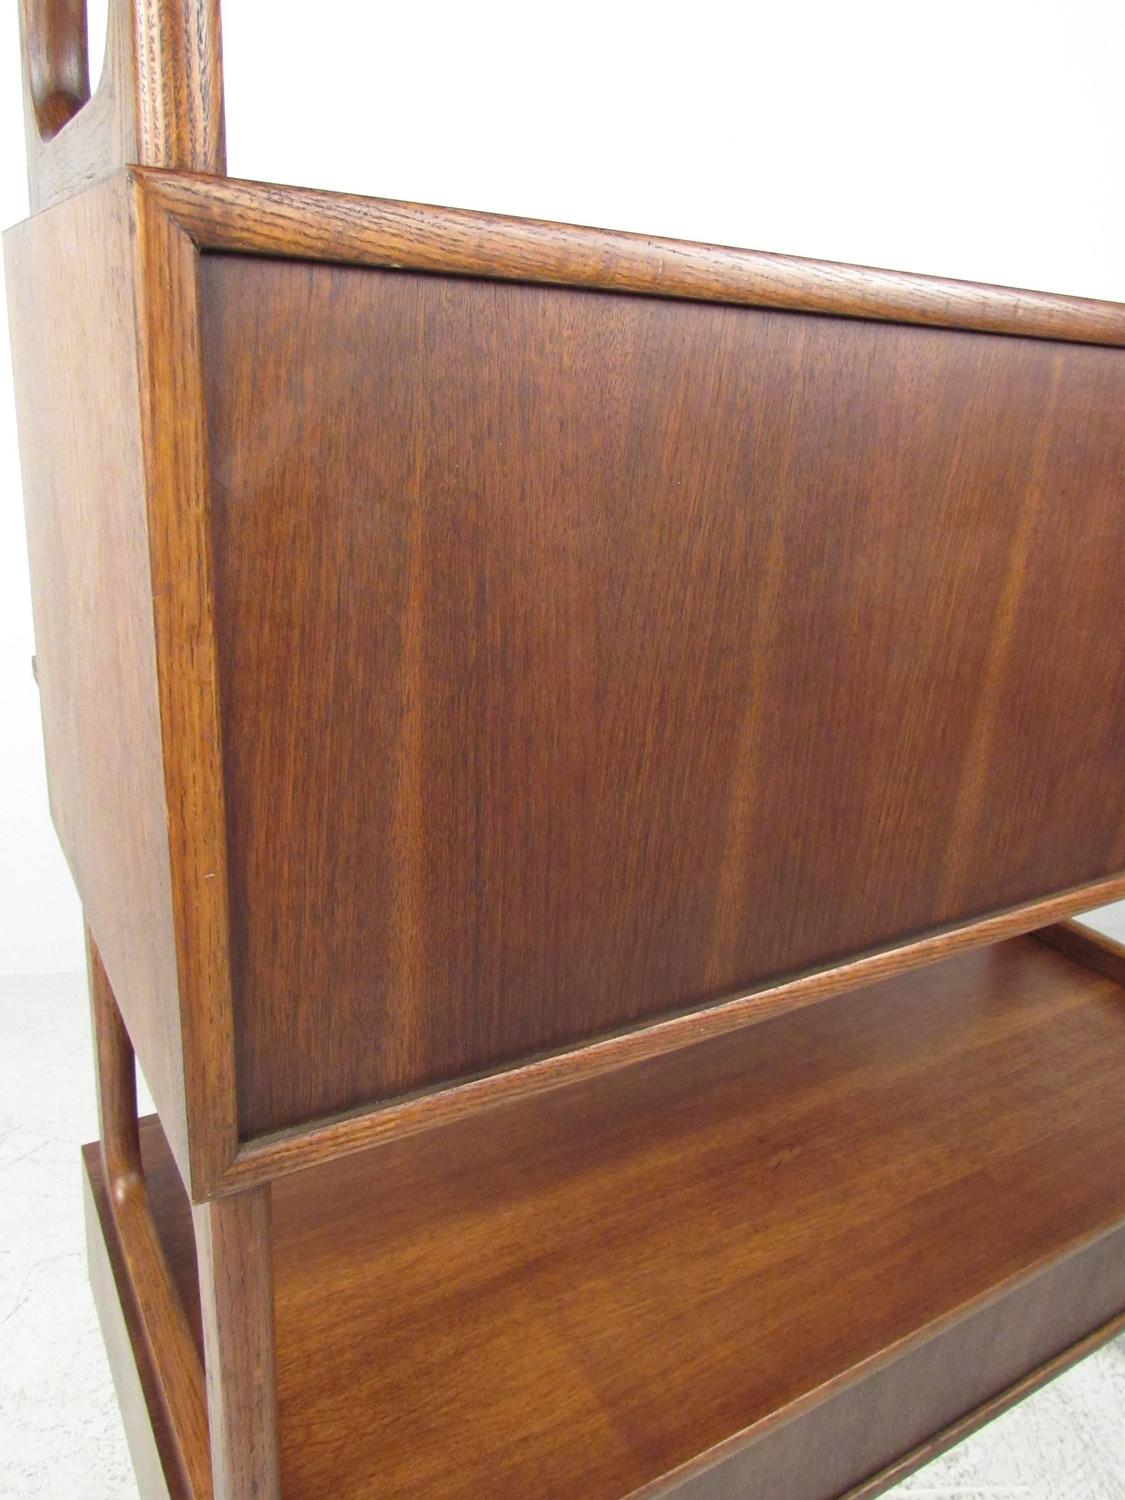 century kitchen cabinets mid century drop front desk or bookshelf cabinet for 2056